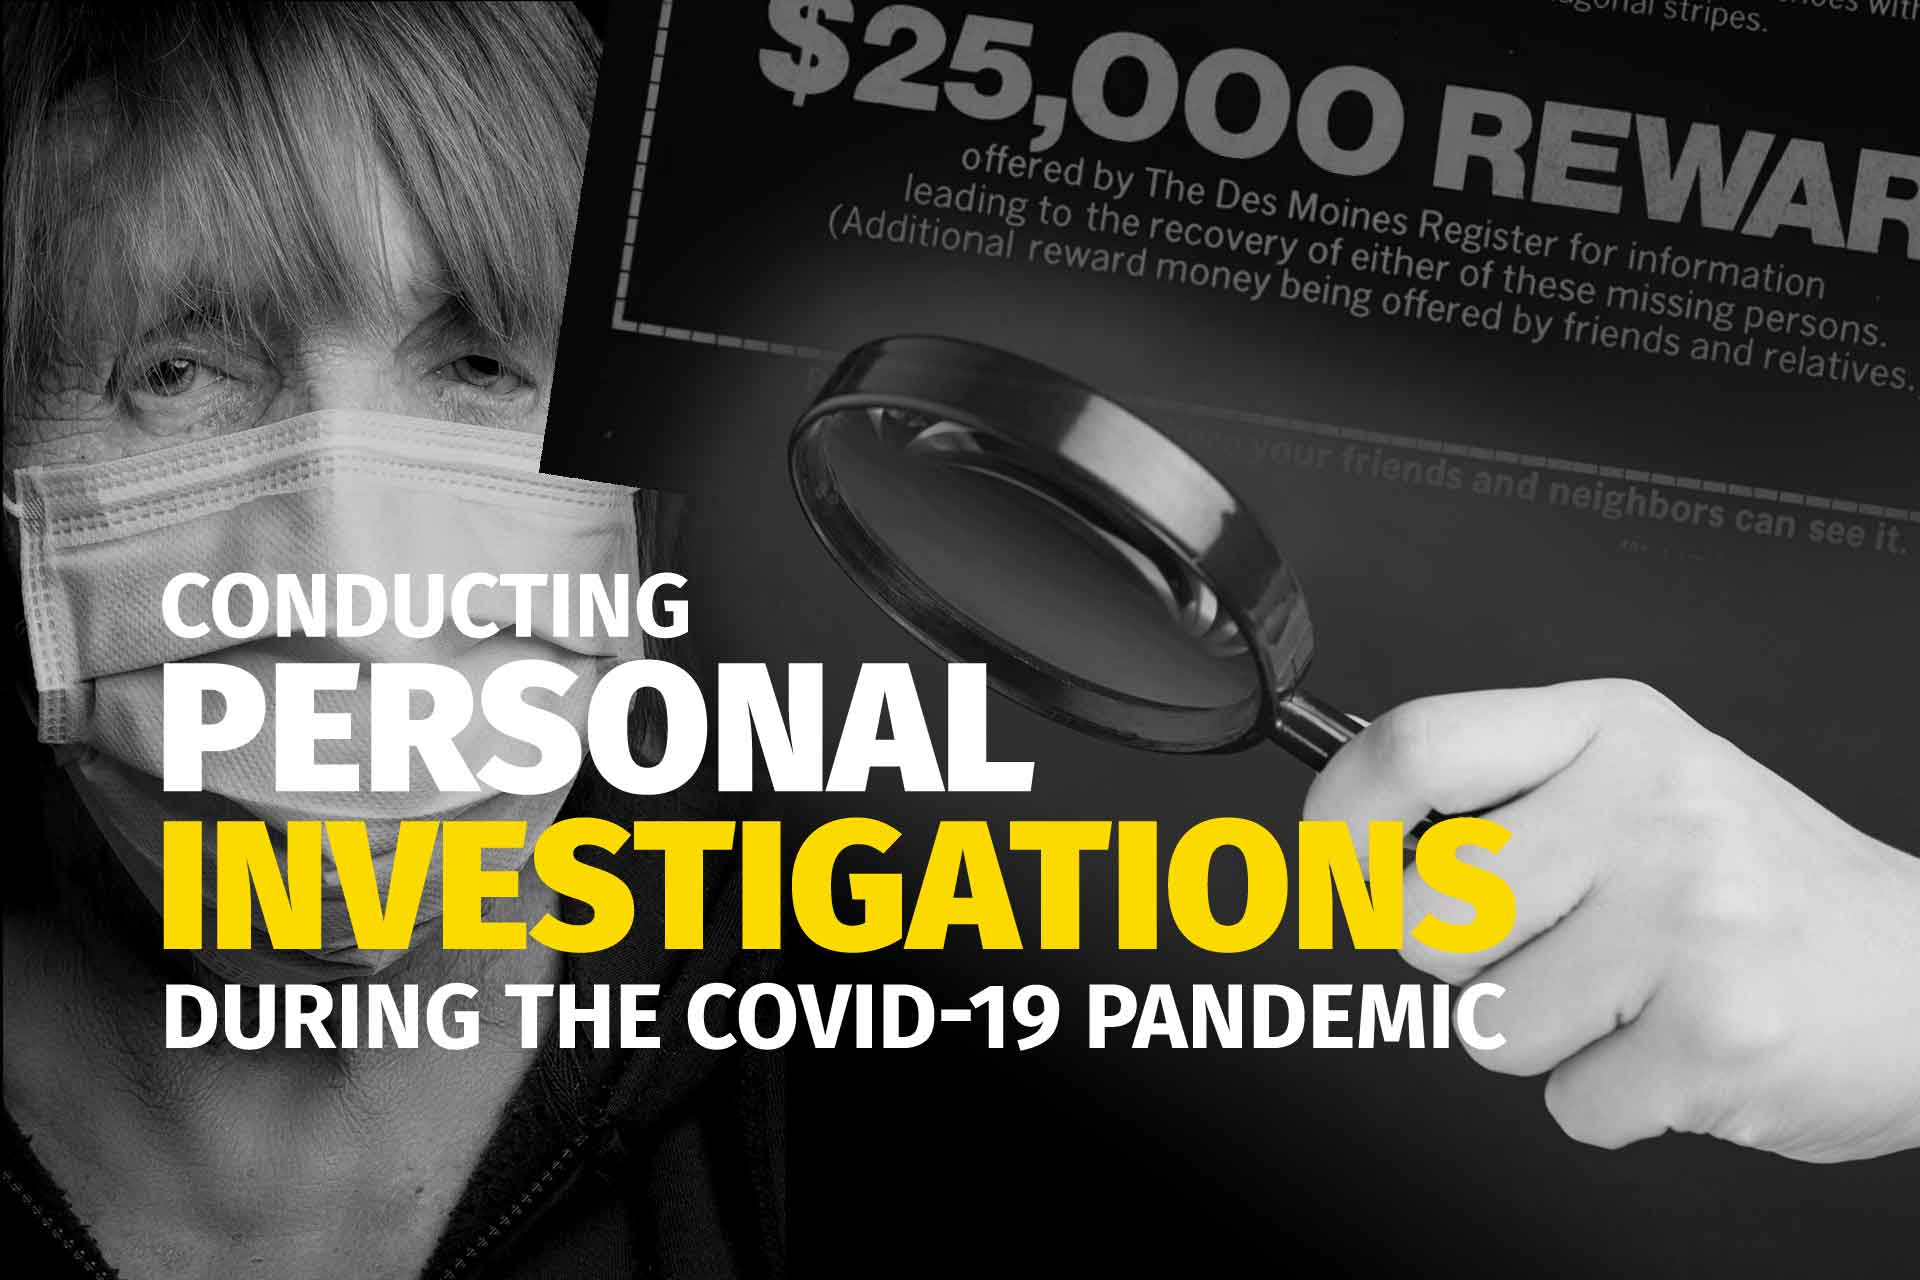 personal investigations during the covid-19 pandemic